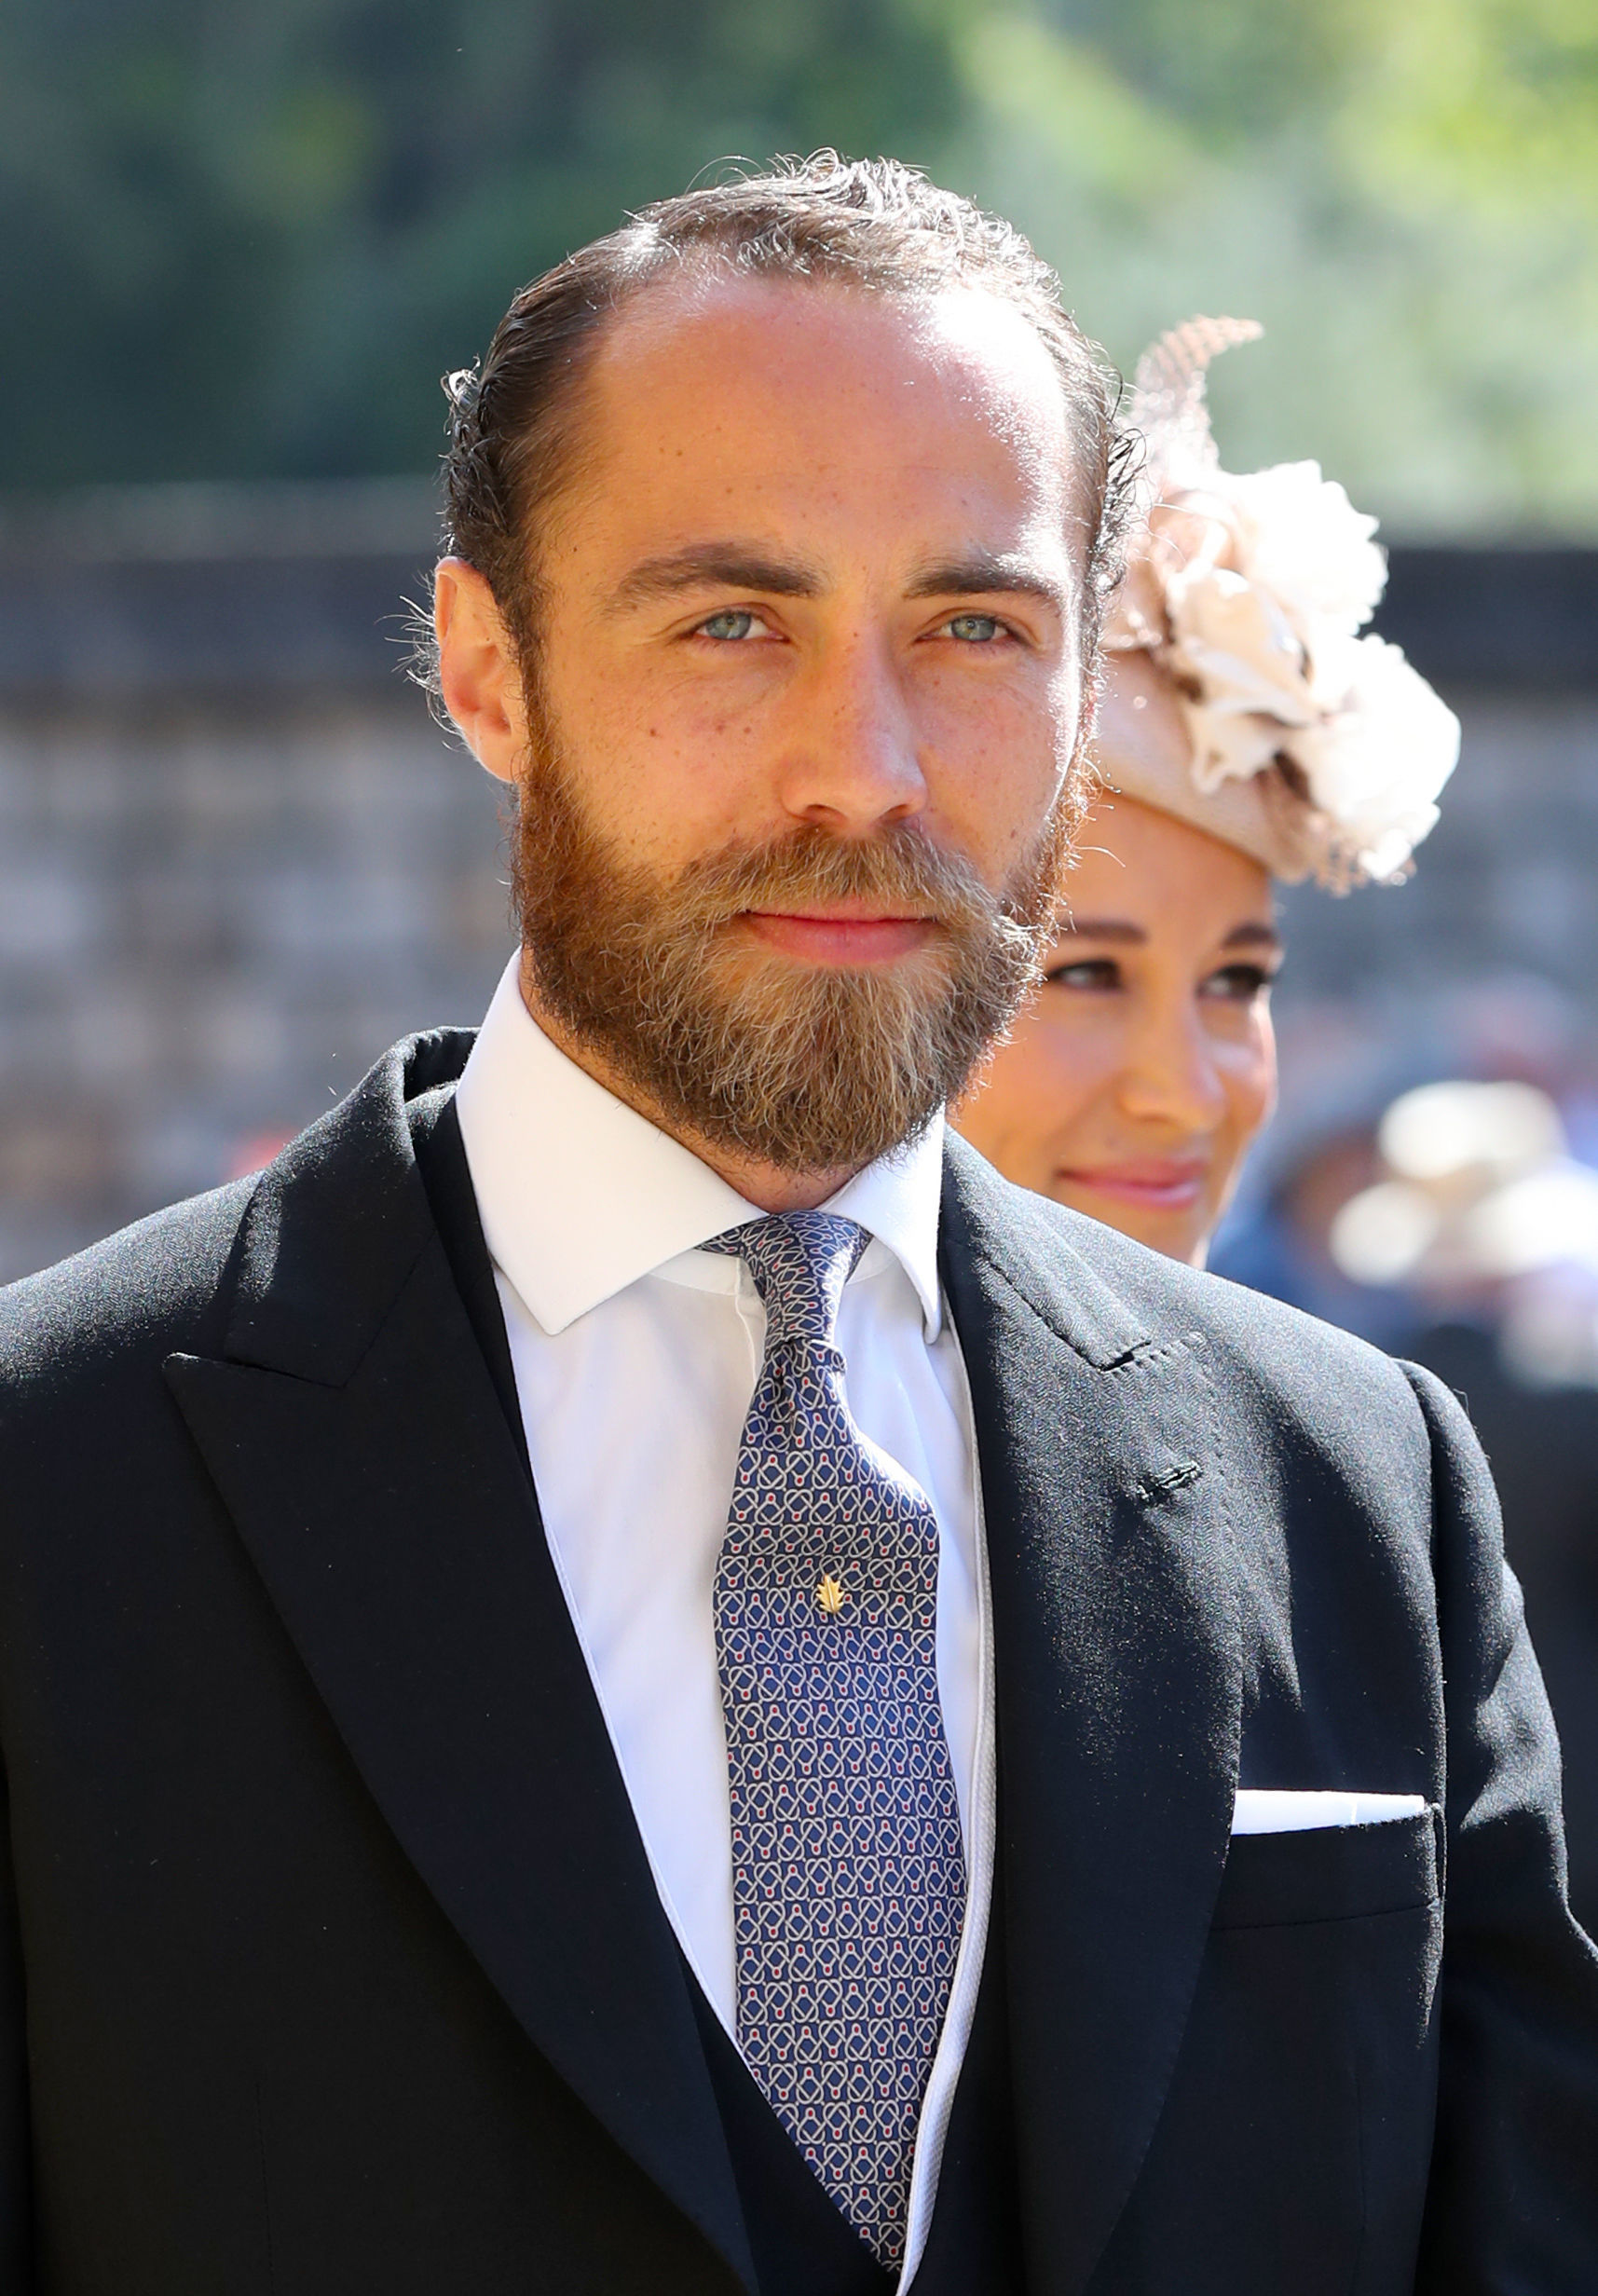 james-middleton-royal-wedding-2018